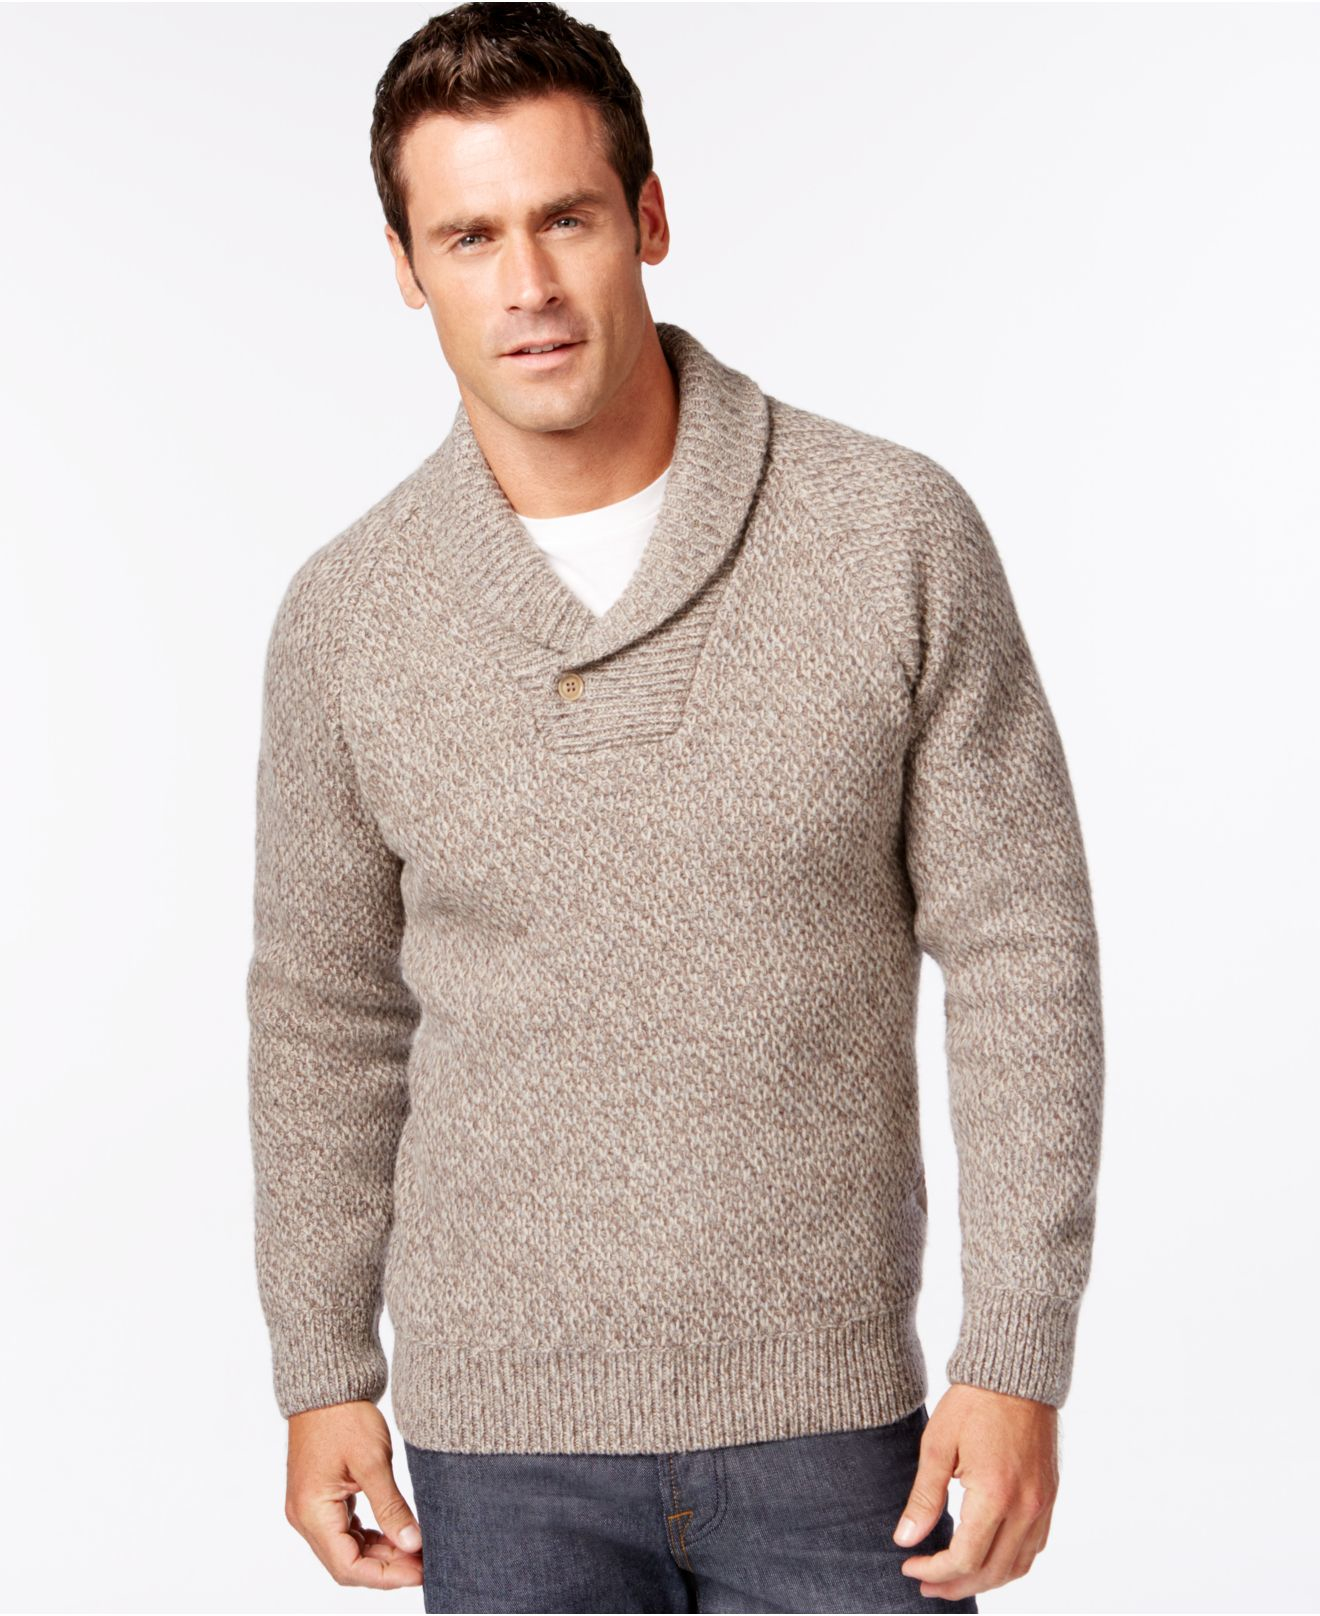 shawl collar sweater gallery oedlaby